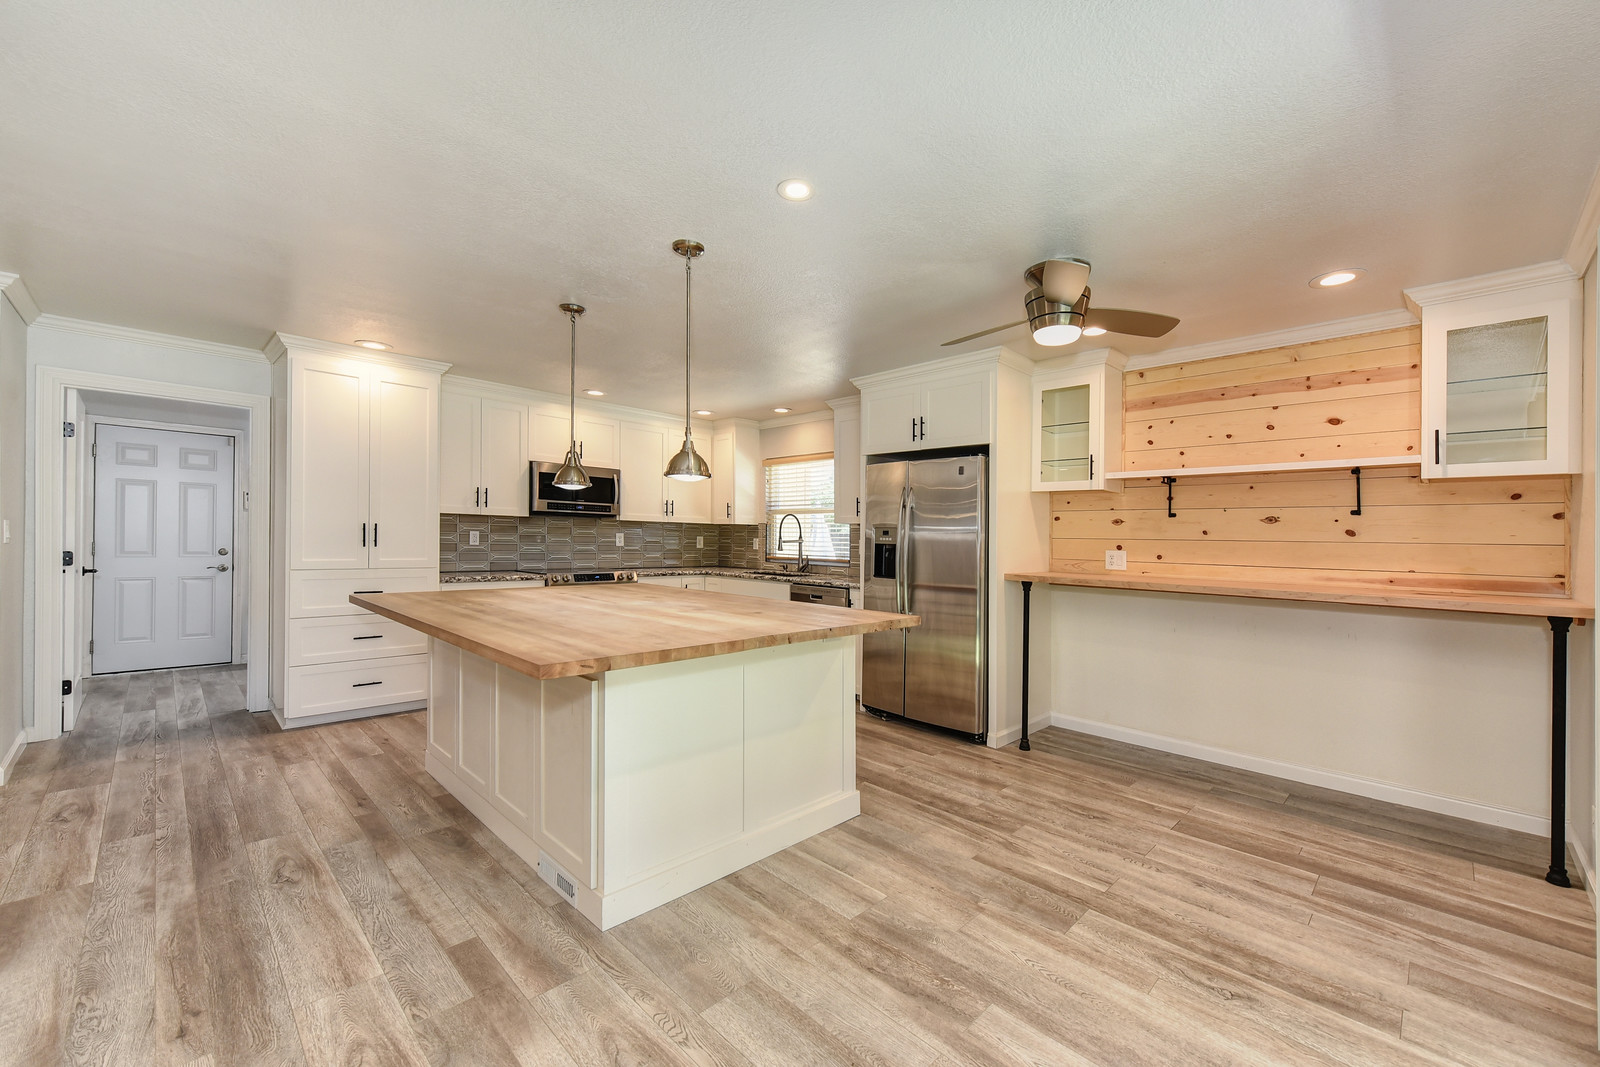 Kitchen 5342 Nyoda Way, Carmichael, Ca | For Sale